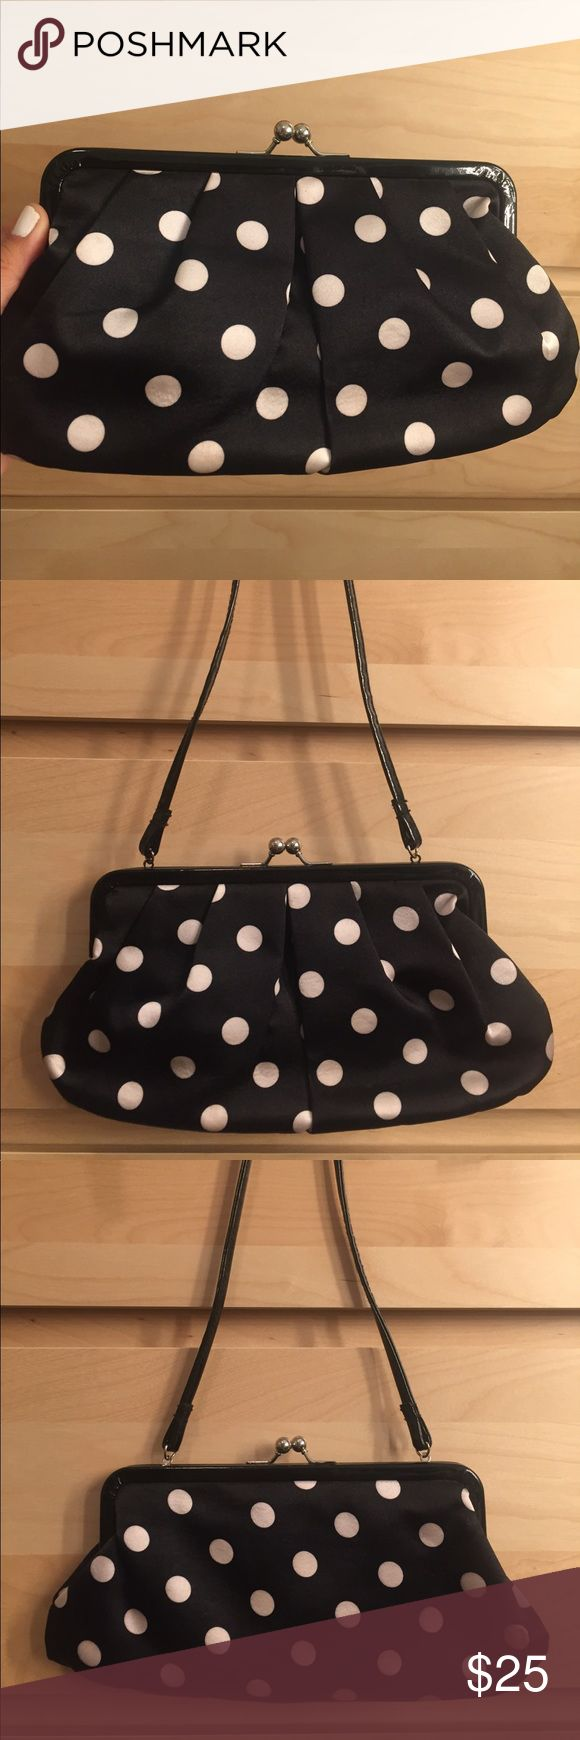 """Polka dot clutch bag Black and white polka dot clutch bag with short strap. can be used with strap or as a clutch by putting strap inside bag. Super cute, retro, vintage style bag! Dimensions: 10.5"""" x 5"""". ✨Bundles of 3+ items get an additional 15% off! Bags Clutches & Wristlets"""